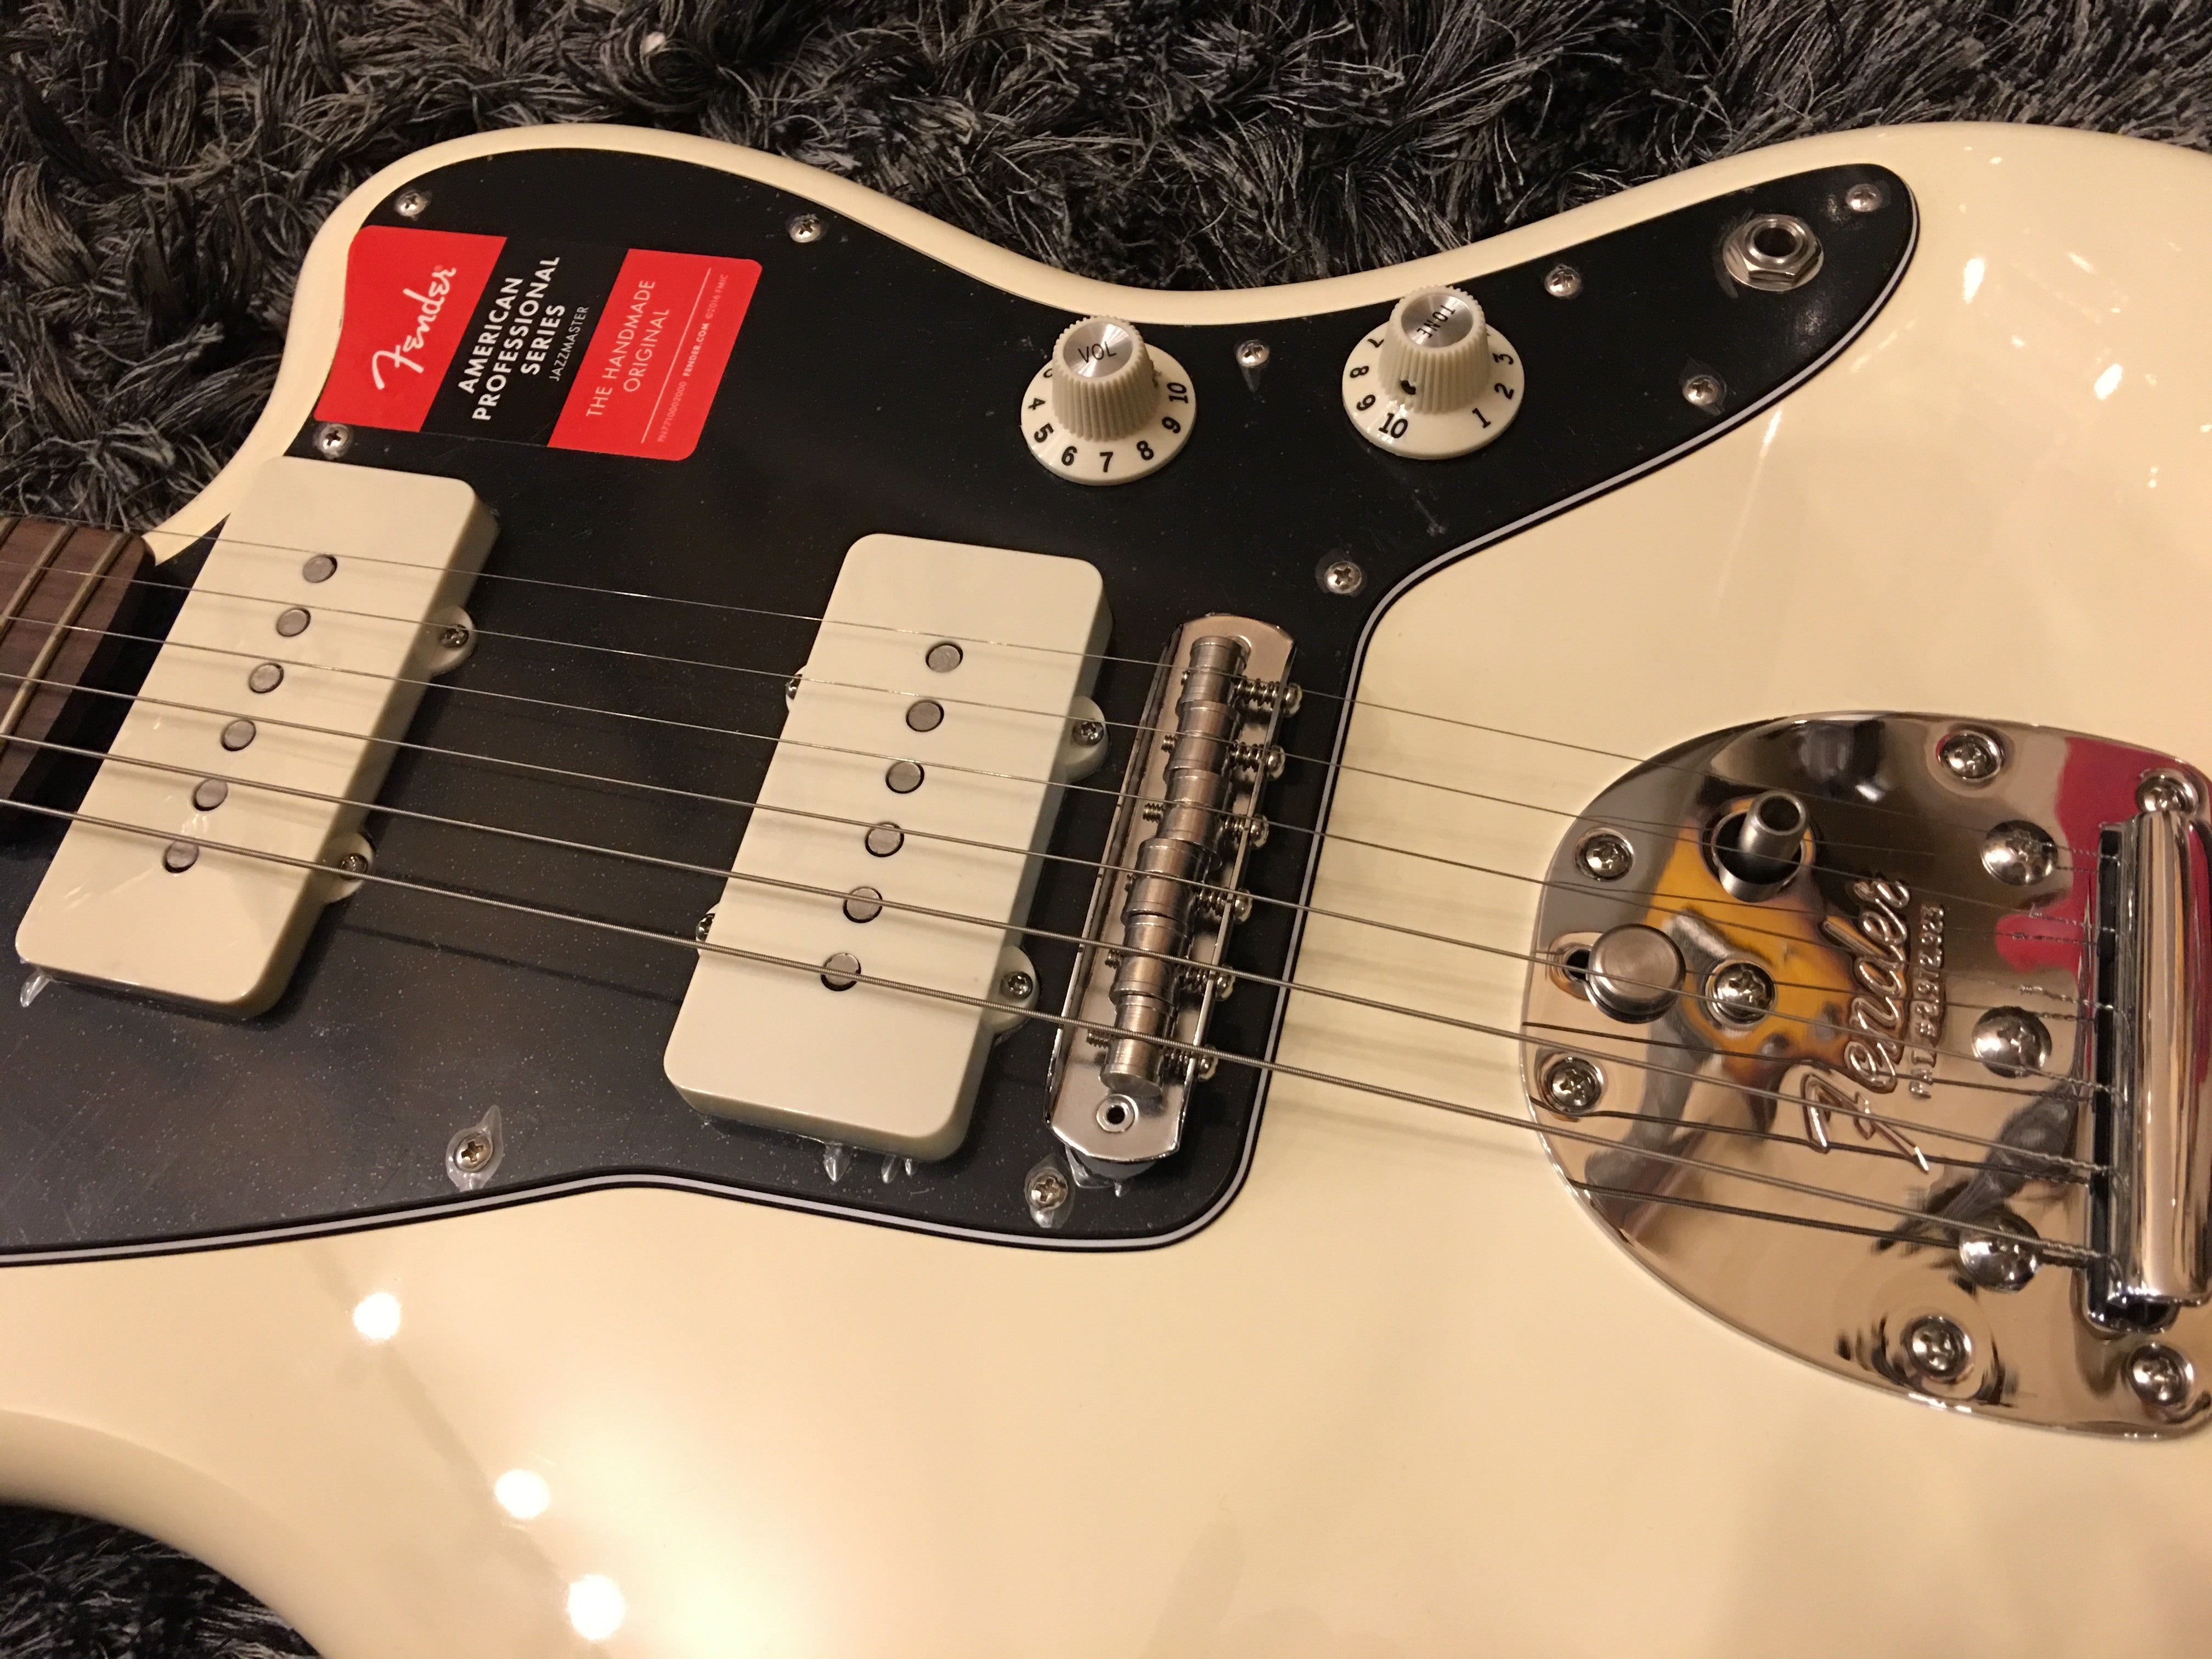 Fender American Professional Jazzmaster - Olympic White with Rosewood Fingerboard fender - HIENDGUITAR.COM